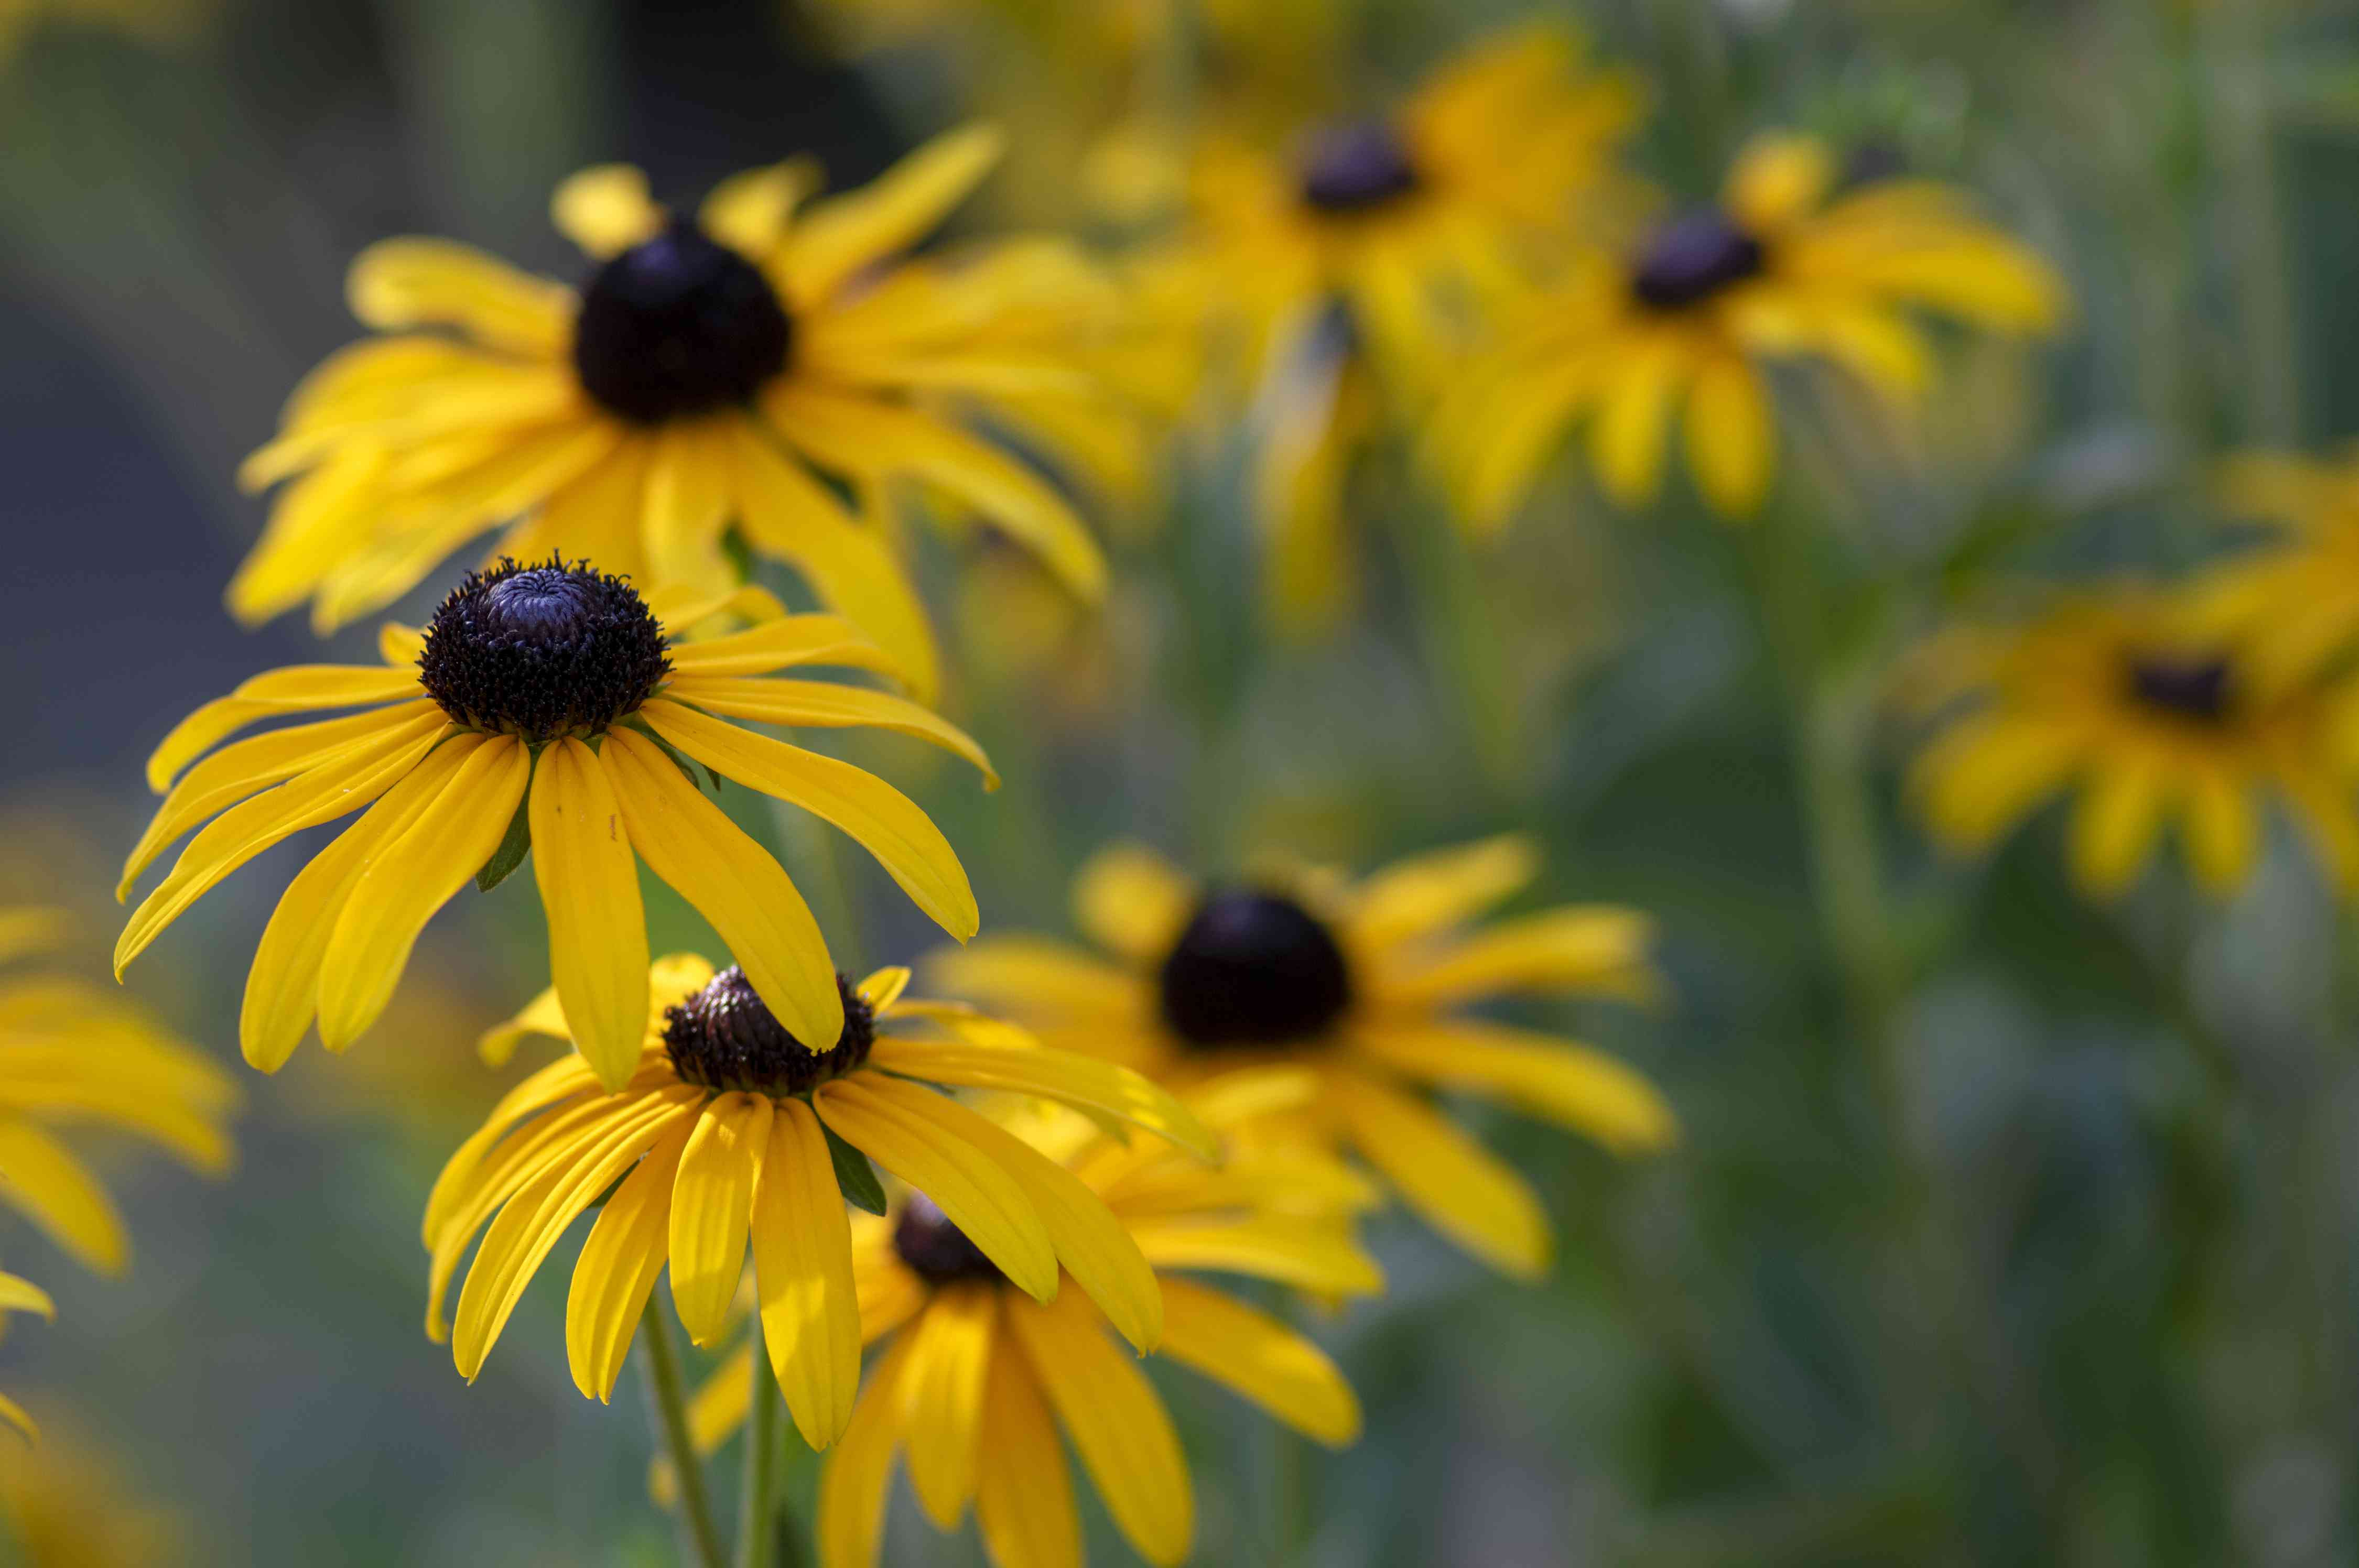 Rudbeckia hirta yellow flower with black brown centre in bloom, black eyed susan in the garden